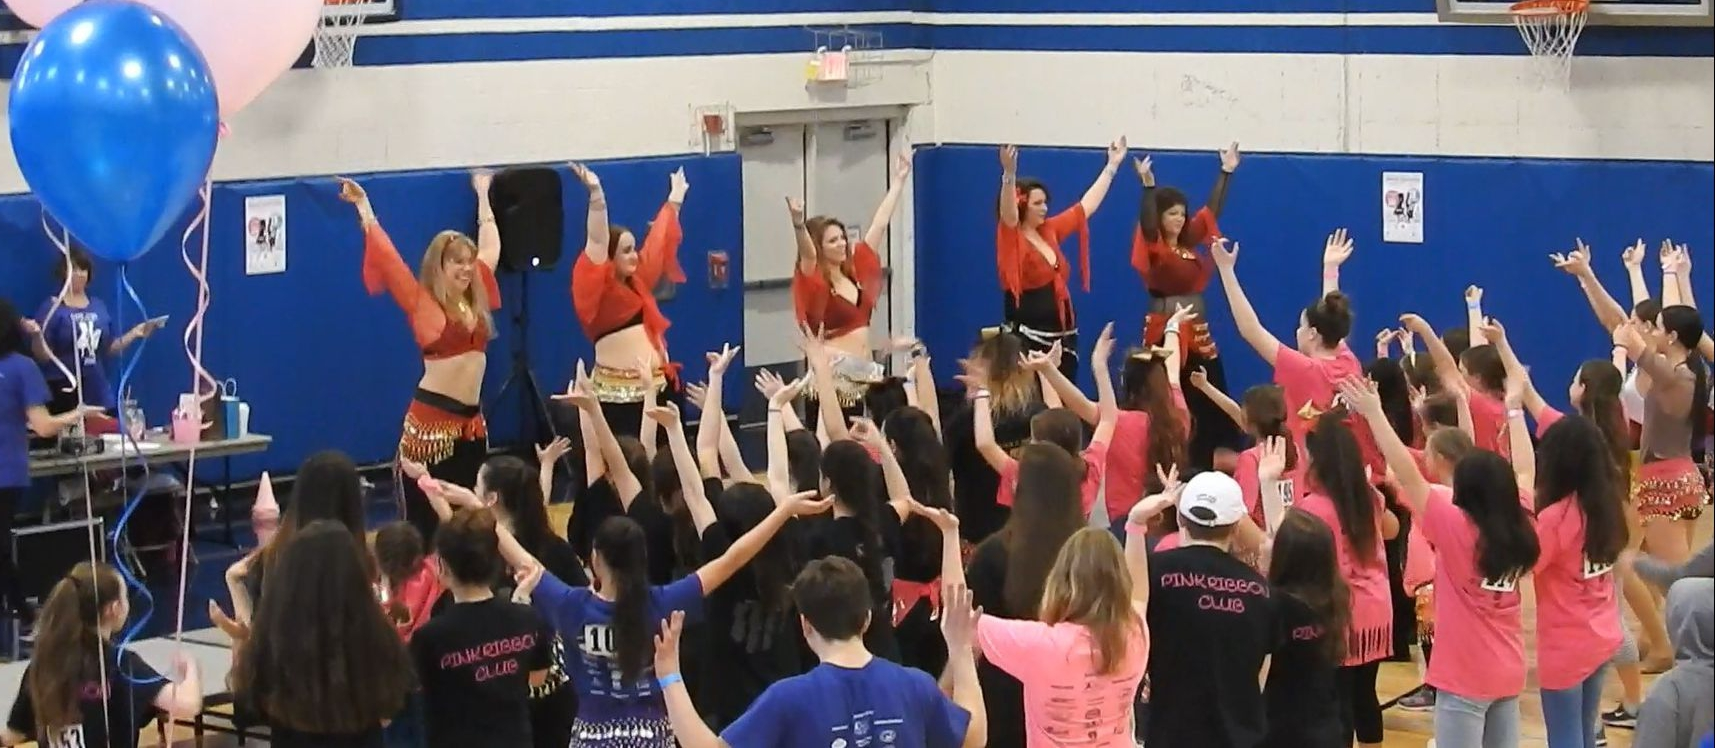 03-24-2018 Dance Marathon #6 cropped